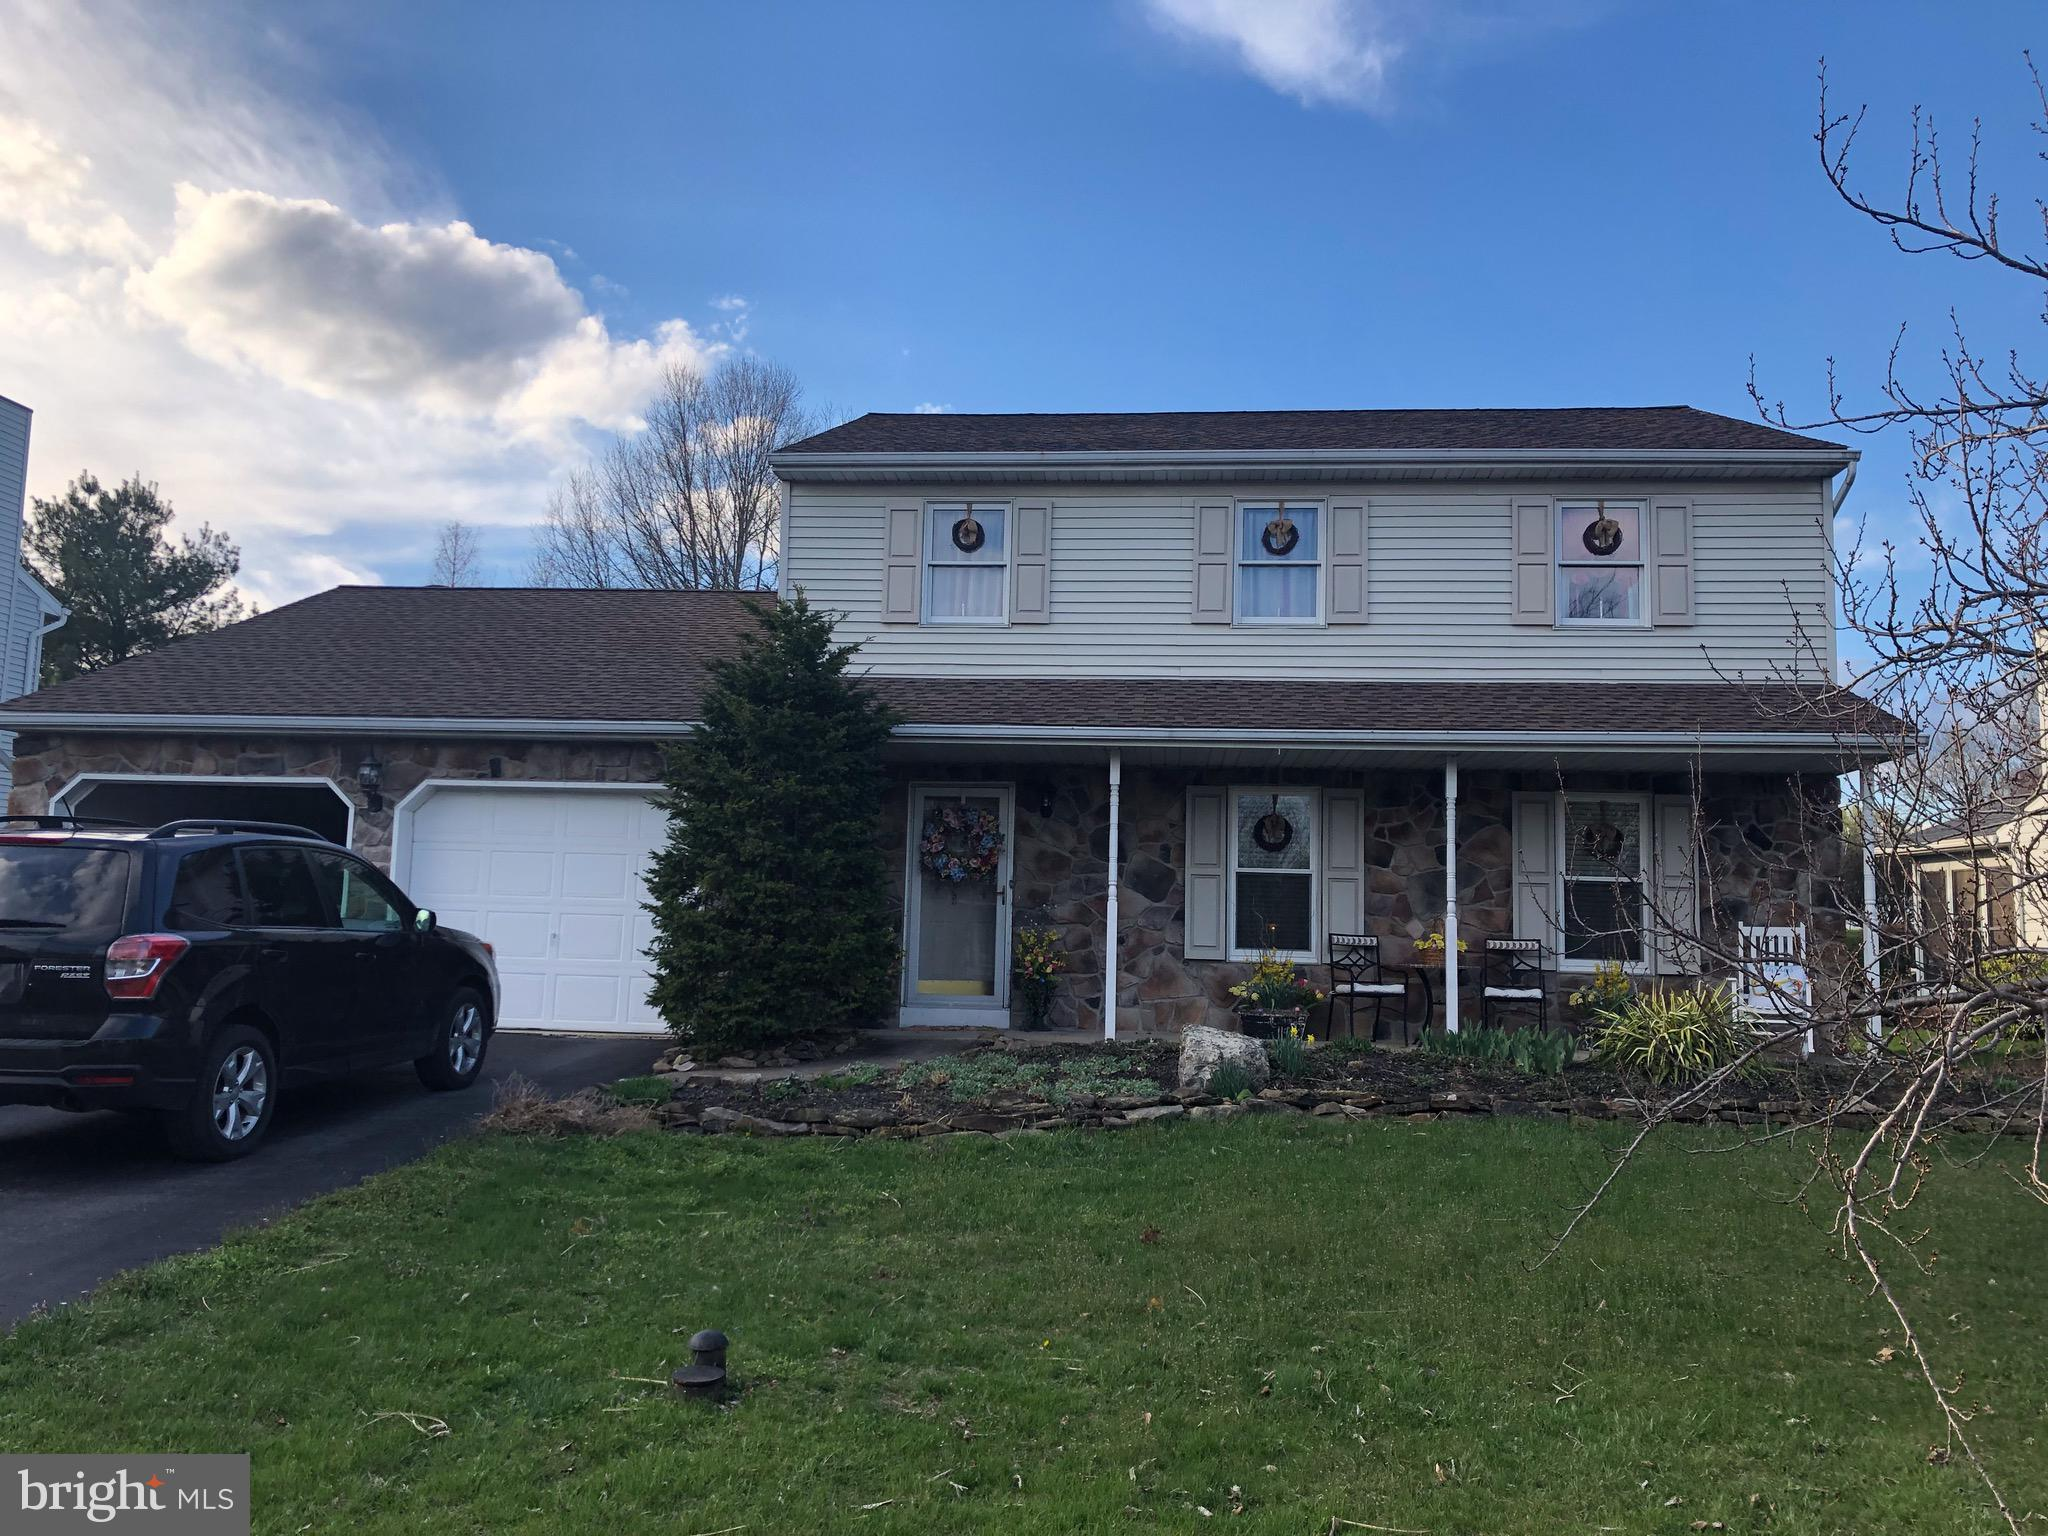 261 FAITH DRIVE, BLANDON, PA 19510